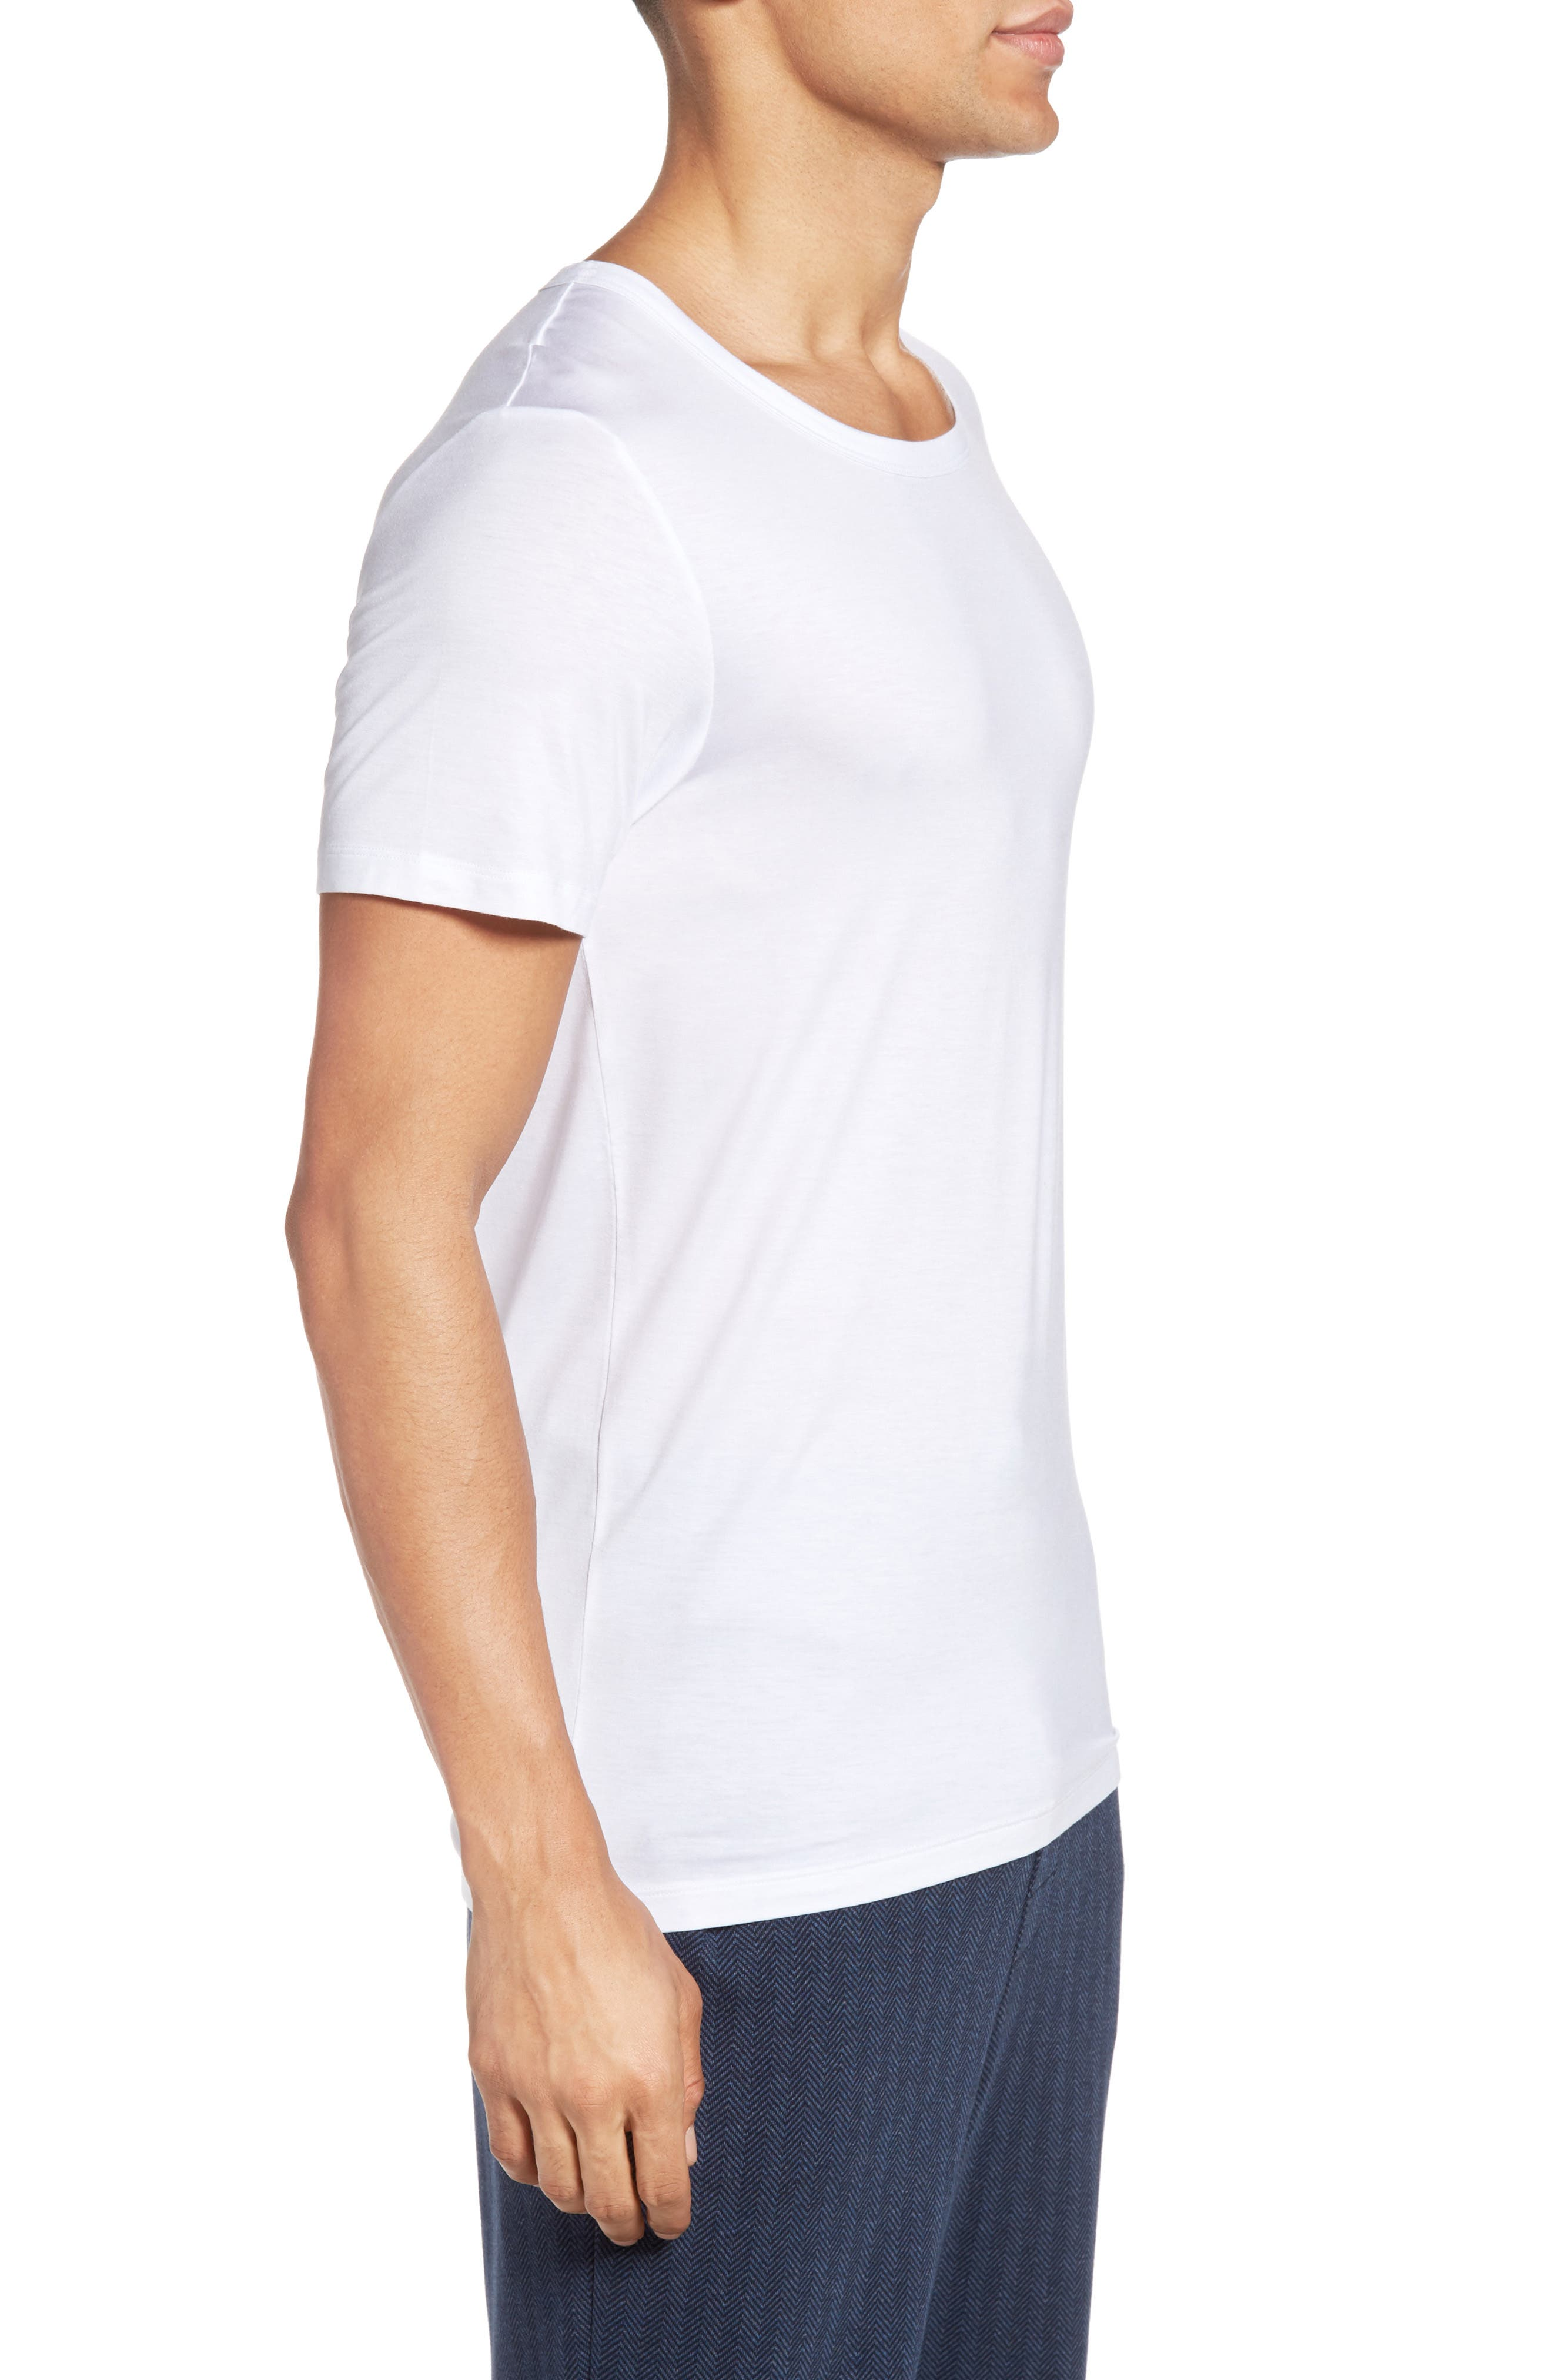 SeaCell<sup>®</sup> Blend T-Shirt,                             Alternate thumbnail 3, color,                             100